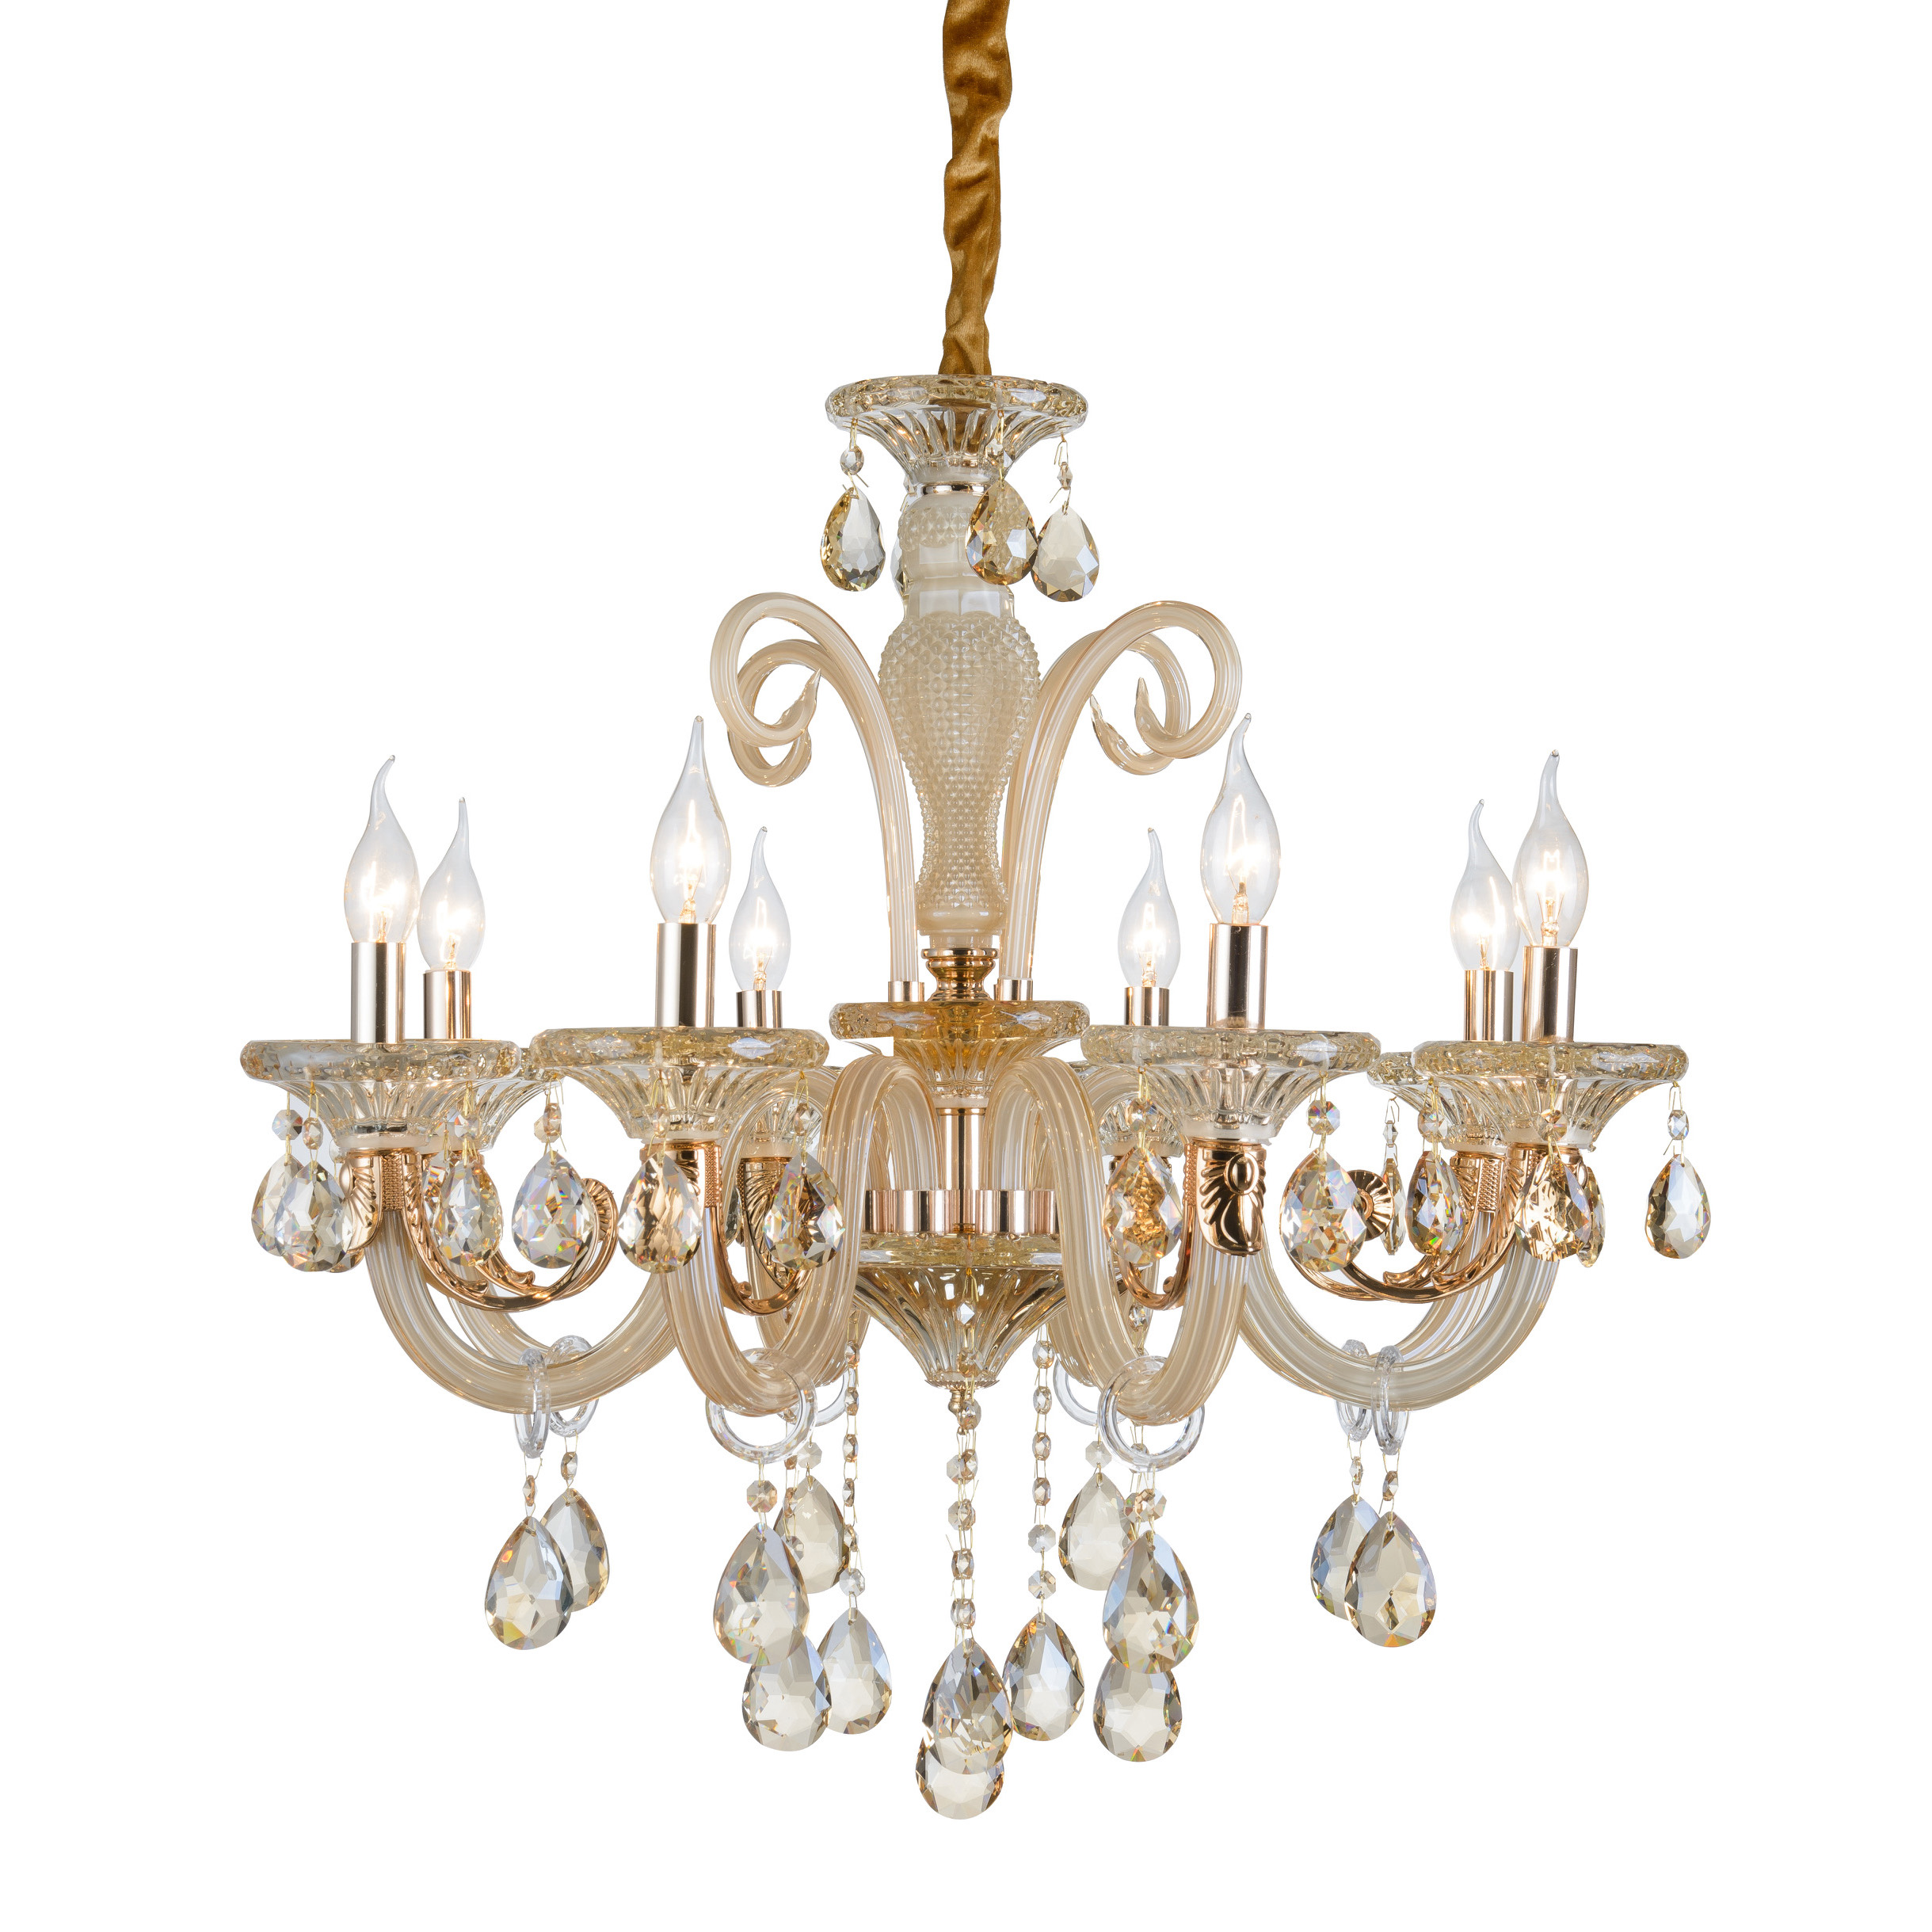 Chandelier 8 lights lamp clear Crystal glass 2013-8